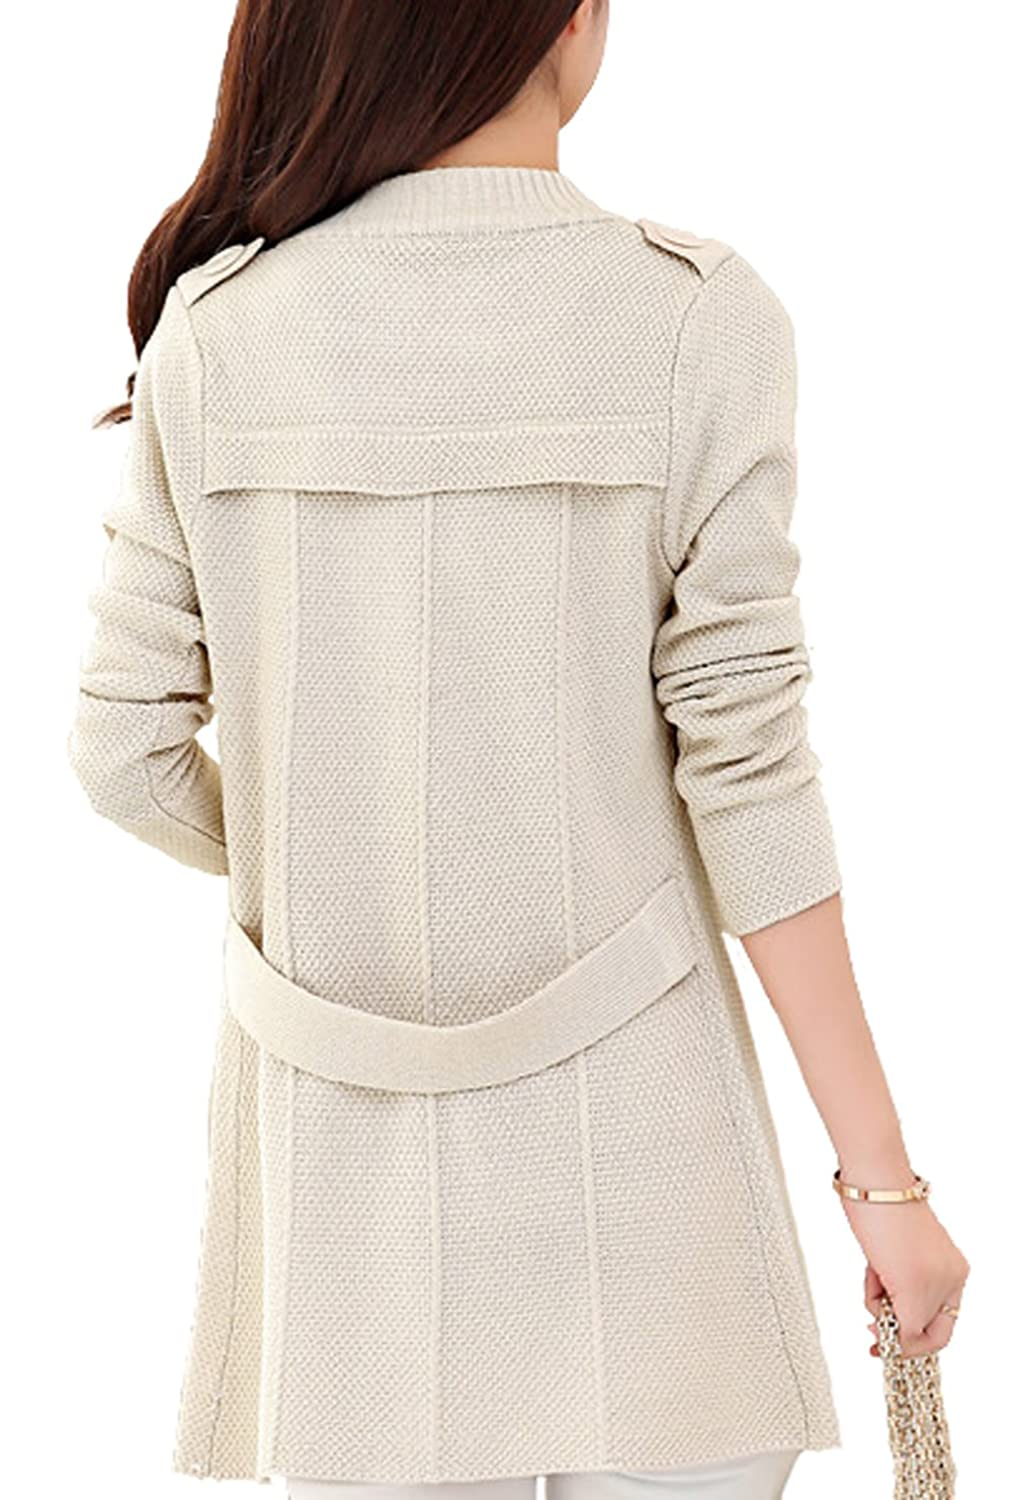 CLJJ7 Women's Loose Open Front Mid-long Knit Cardigan Sweater at ...